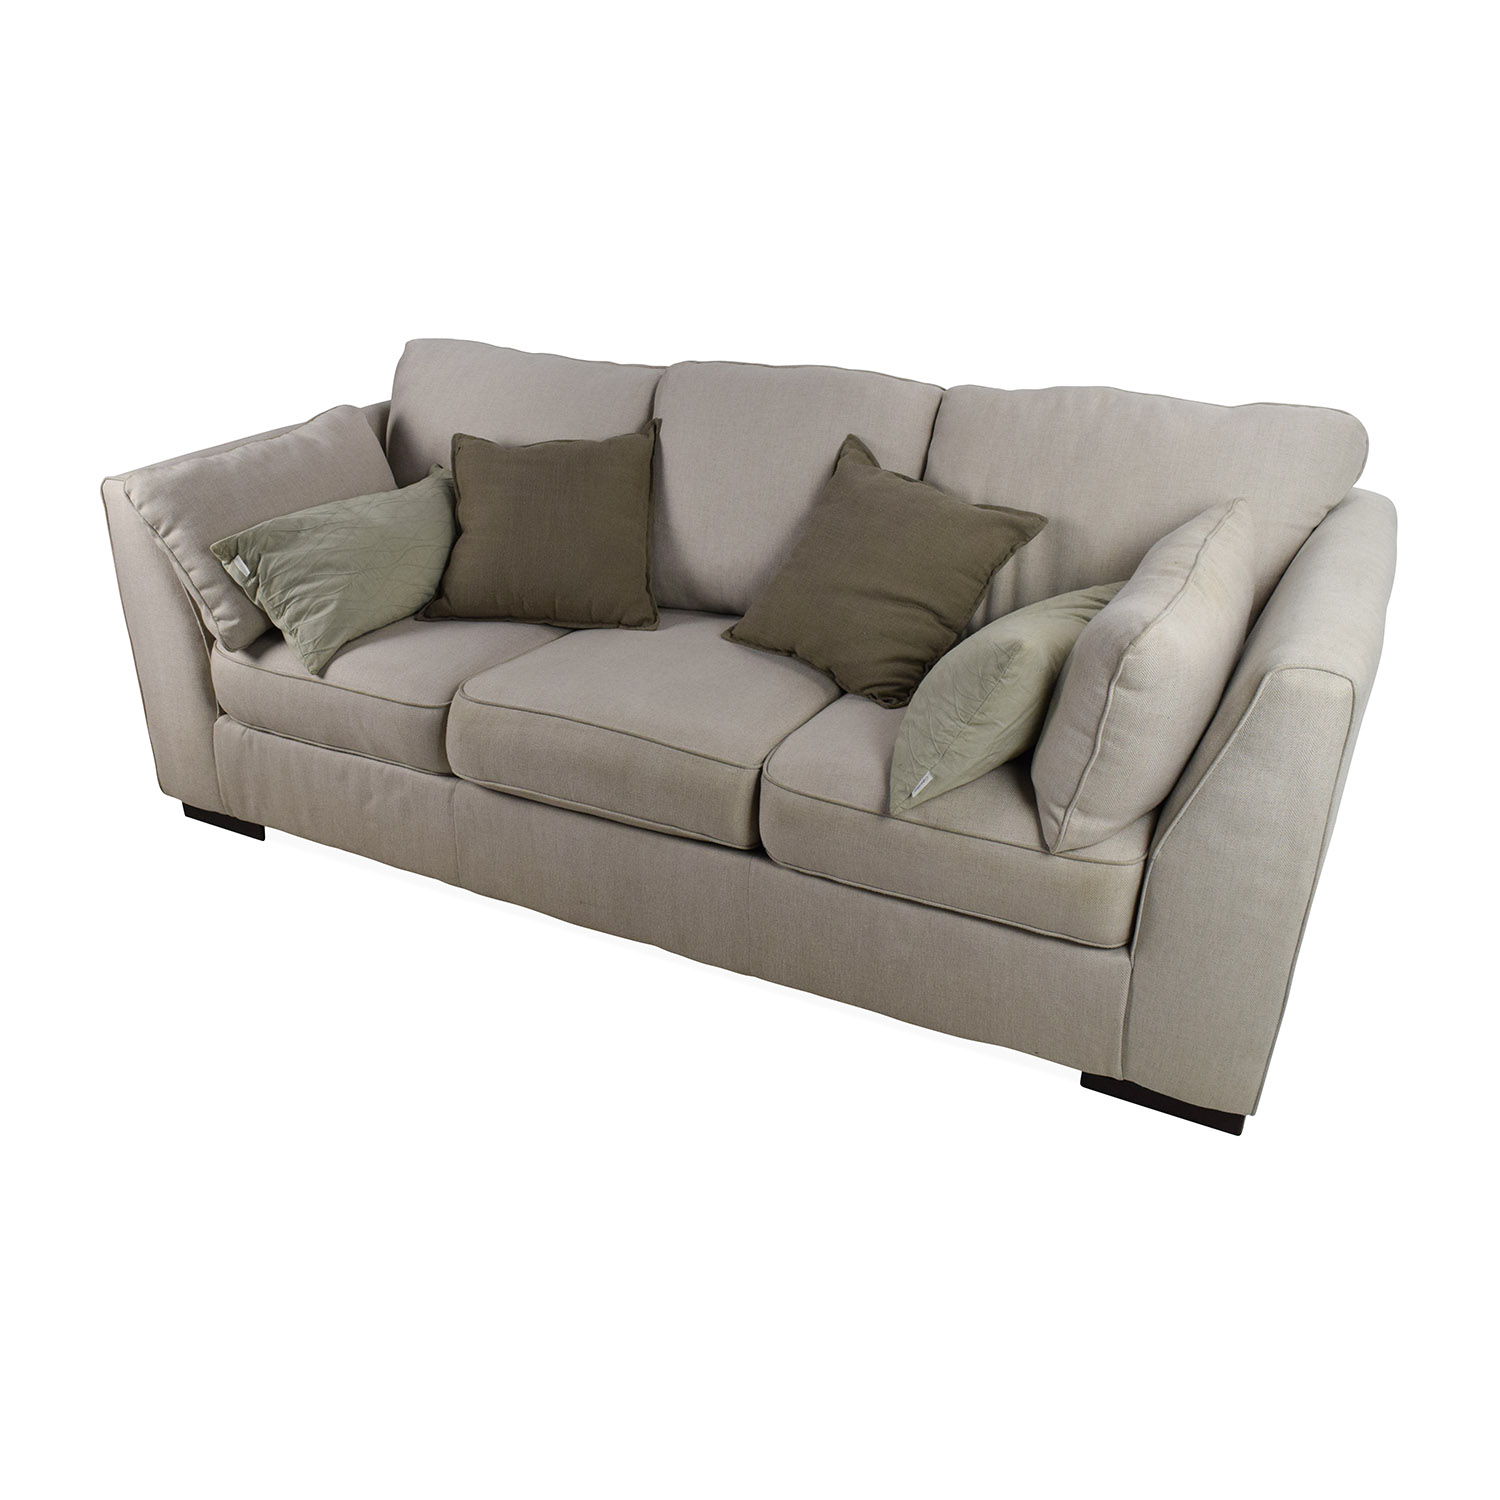 62% OFF Ashley Furniture Ashley Furniture Pierin Sofa Sofas